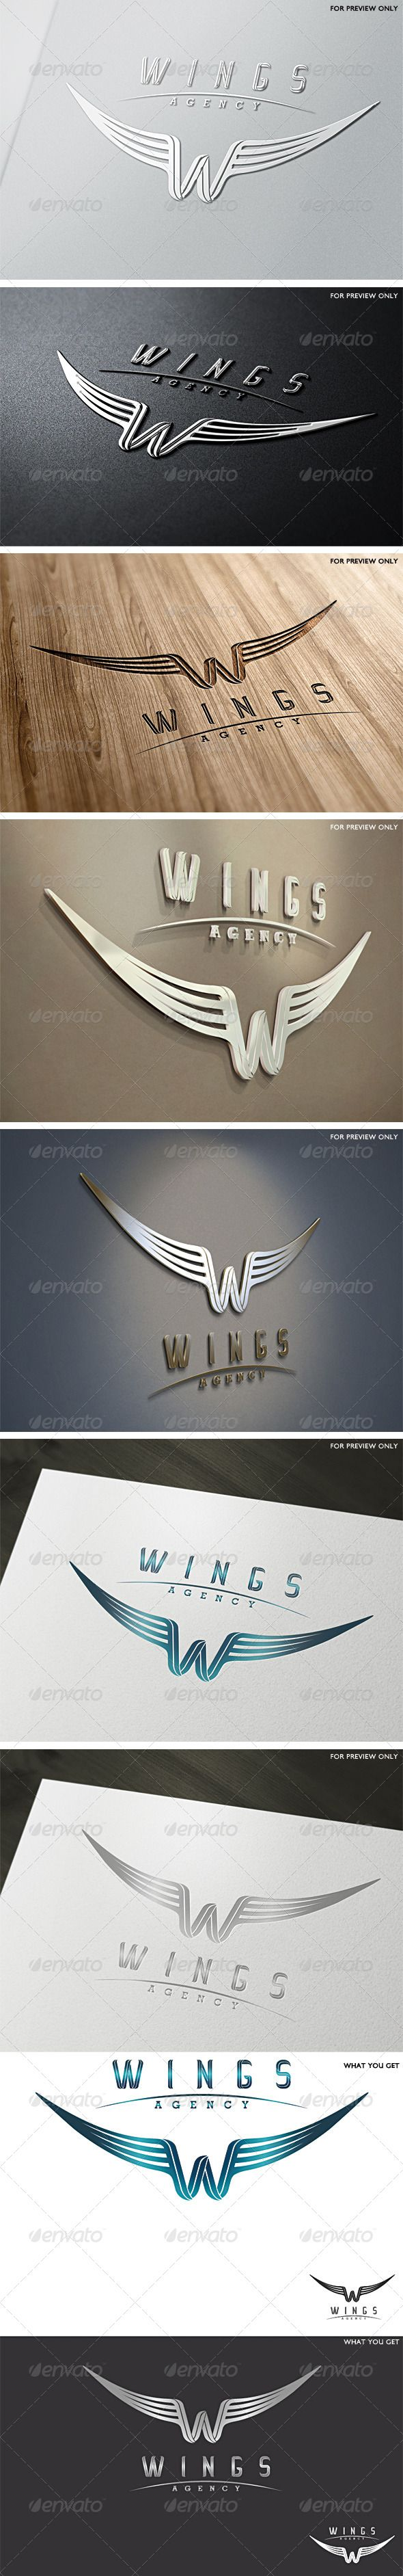 Logo Idea I Like The Symbolism Of The Wings To Illustrate The